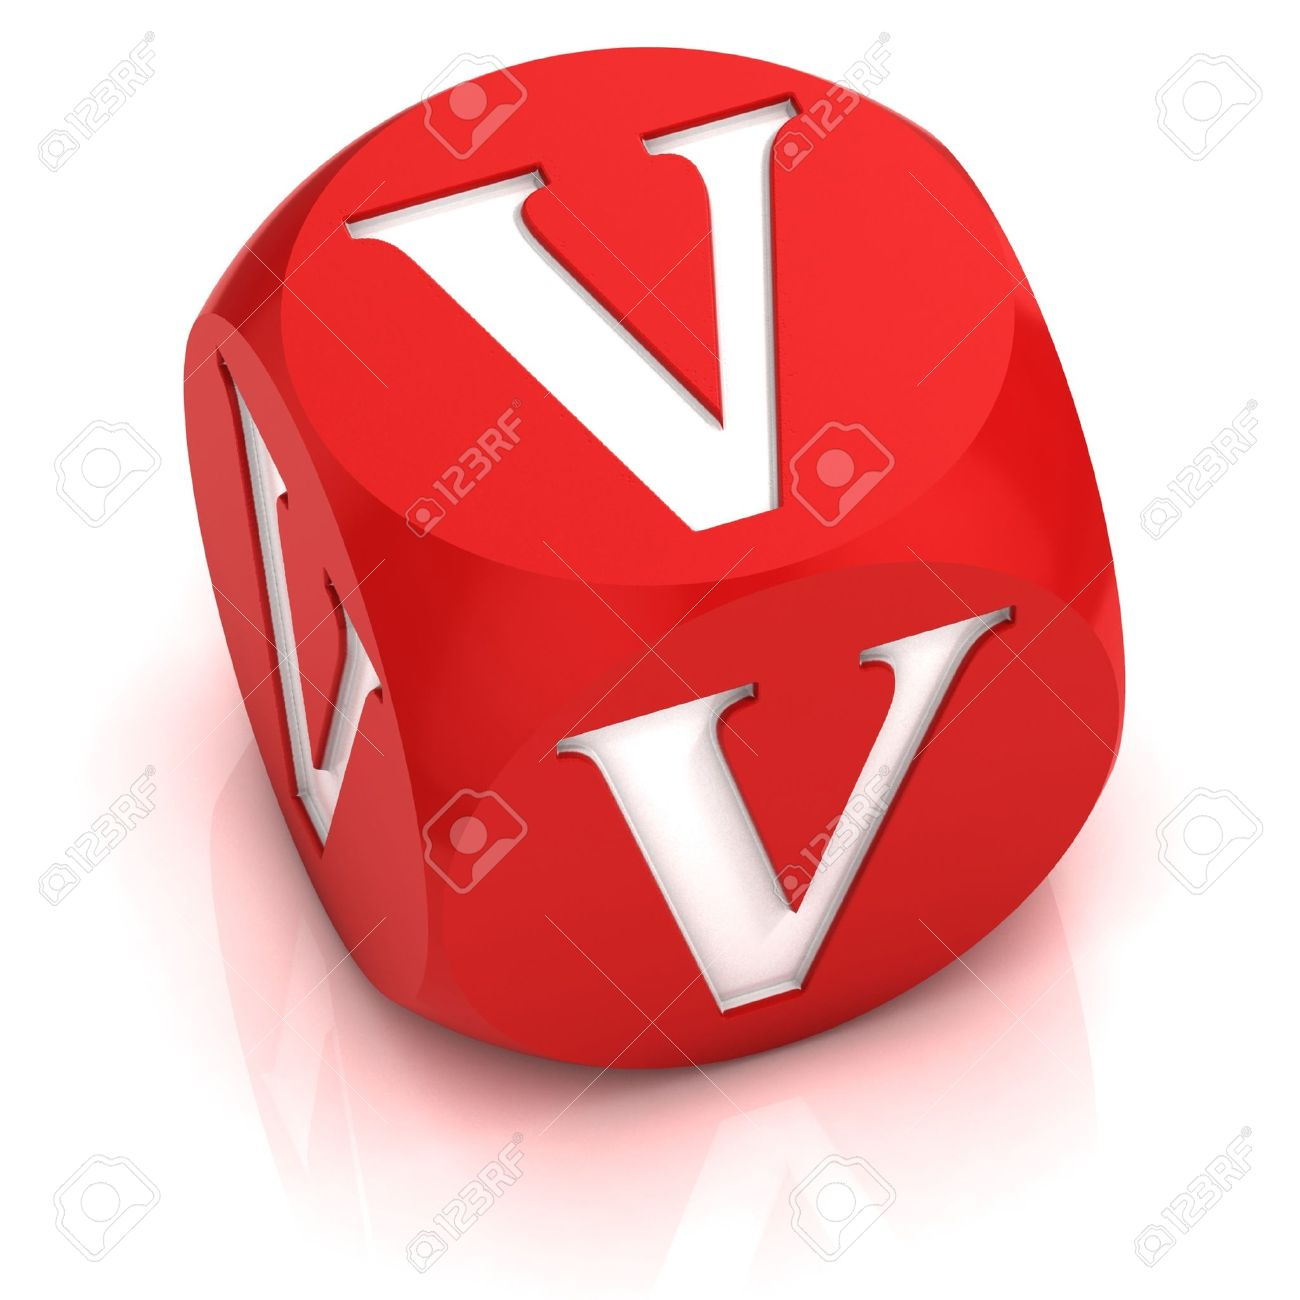 Dice Font Letter V Stock Photo, Picture And Royalty Free Image